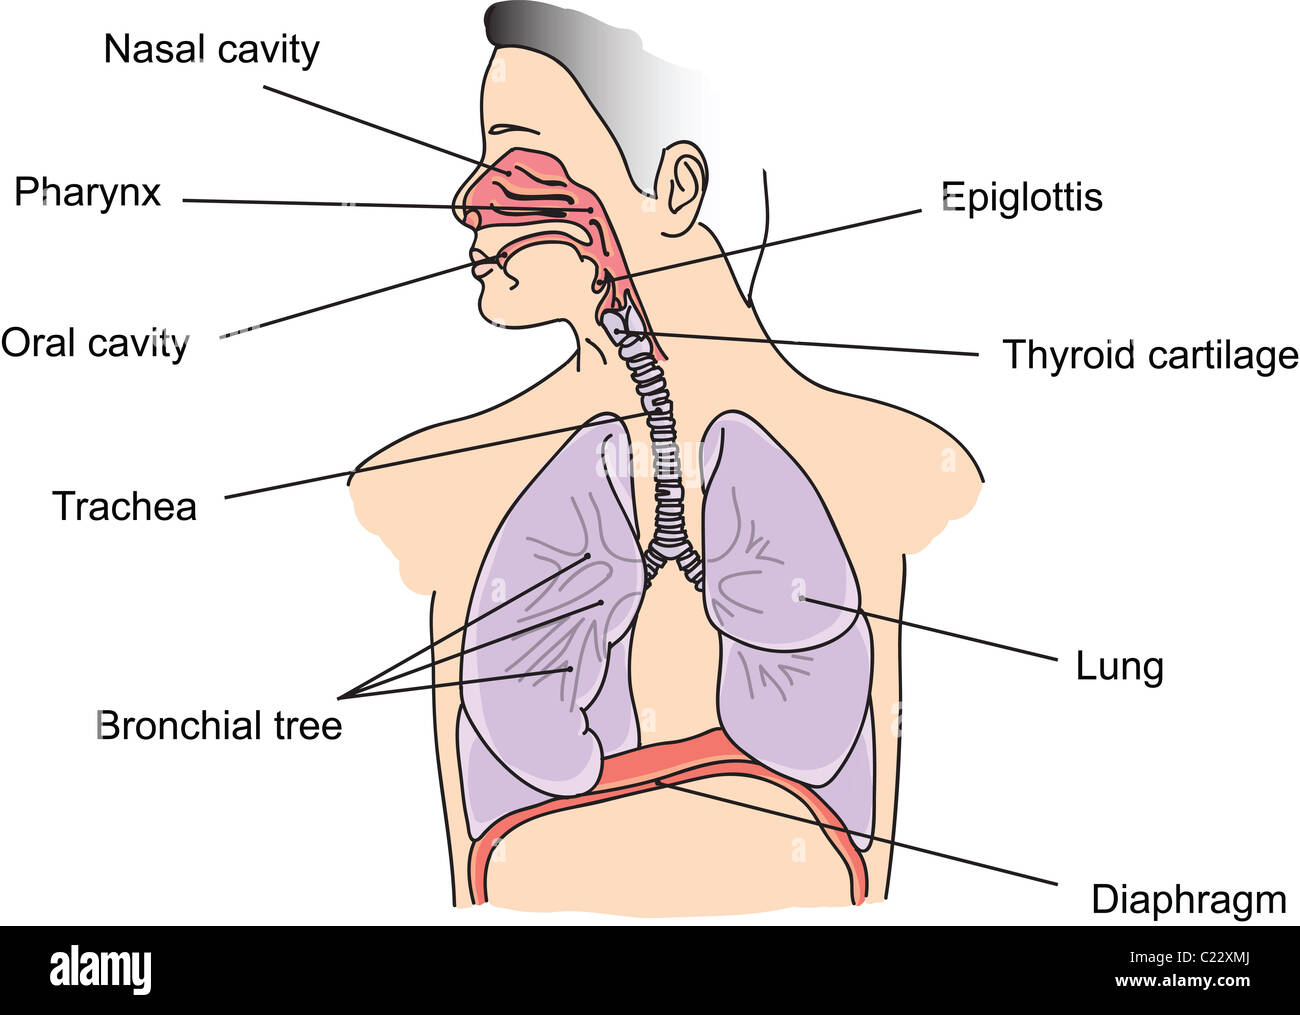 Structure of human lungs and respiratory system illustration stock structure of human lungs and respiratory system illustration ccuart